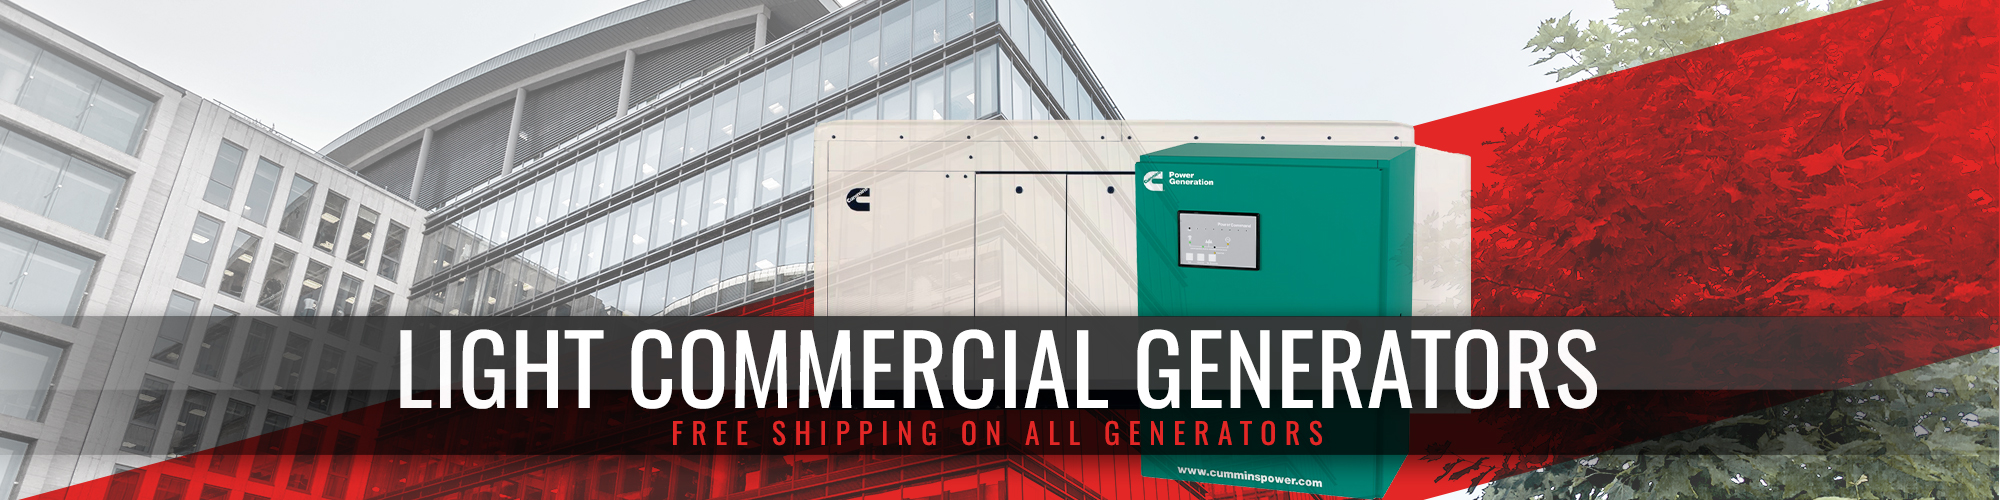 Light Commercial Generators